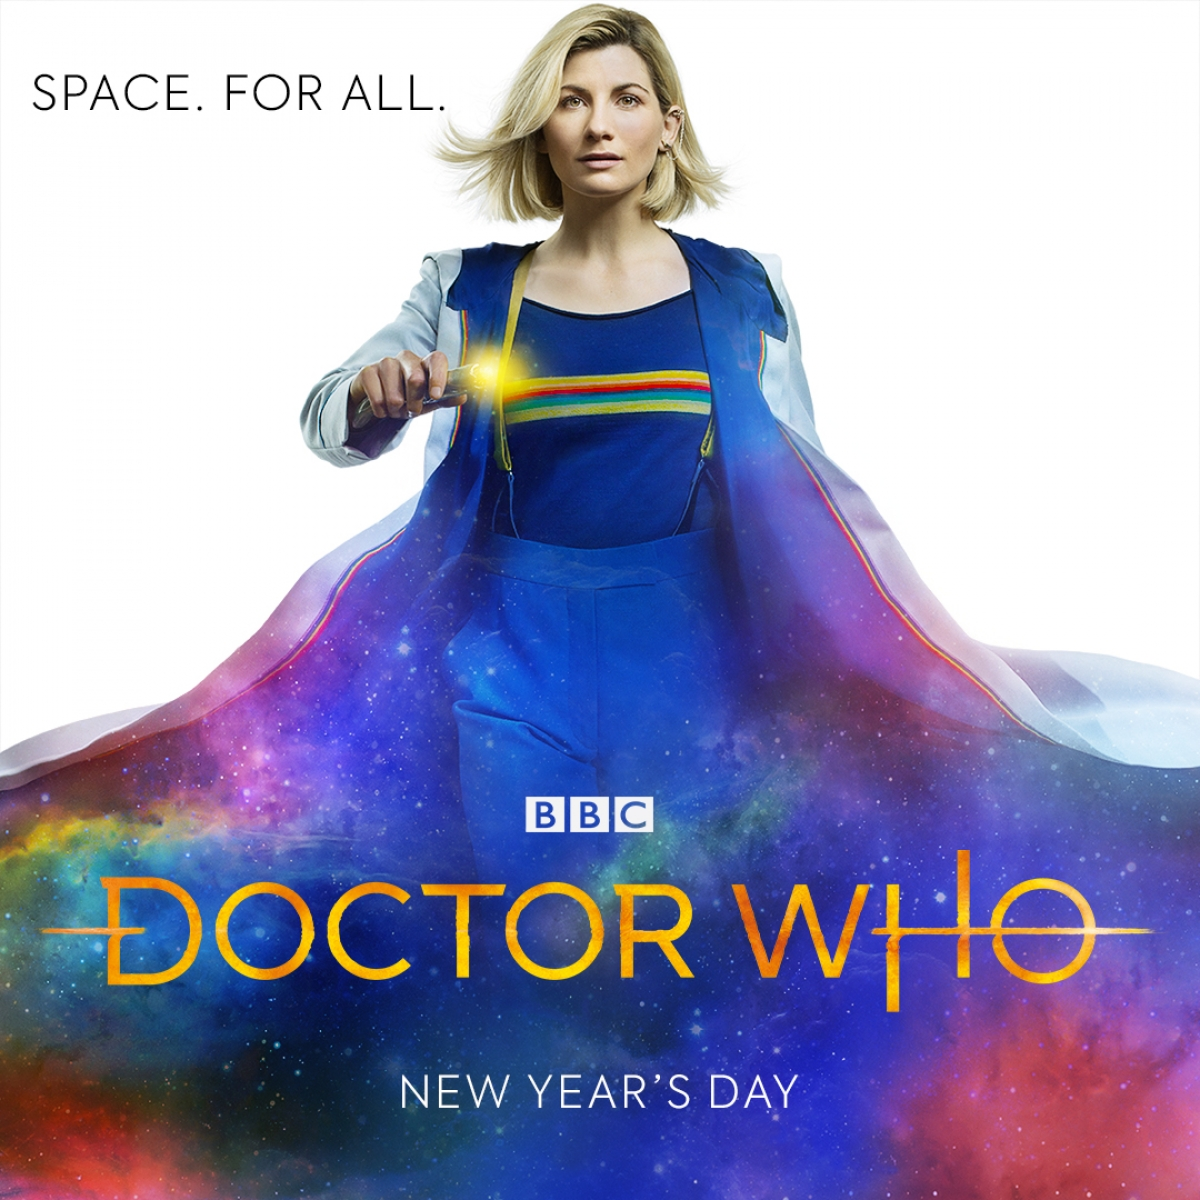 Doctor Who Series 12 begins New Year's Day 2020